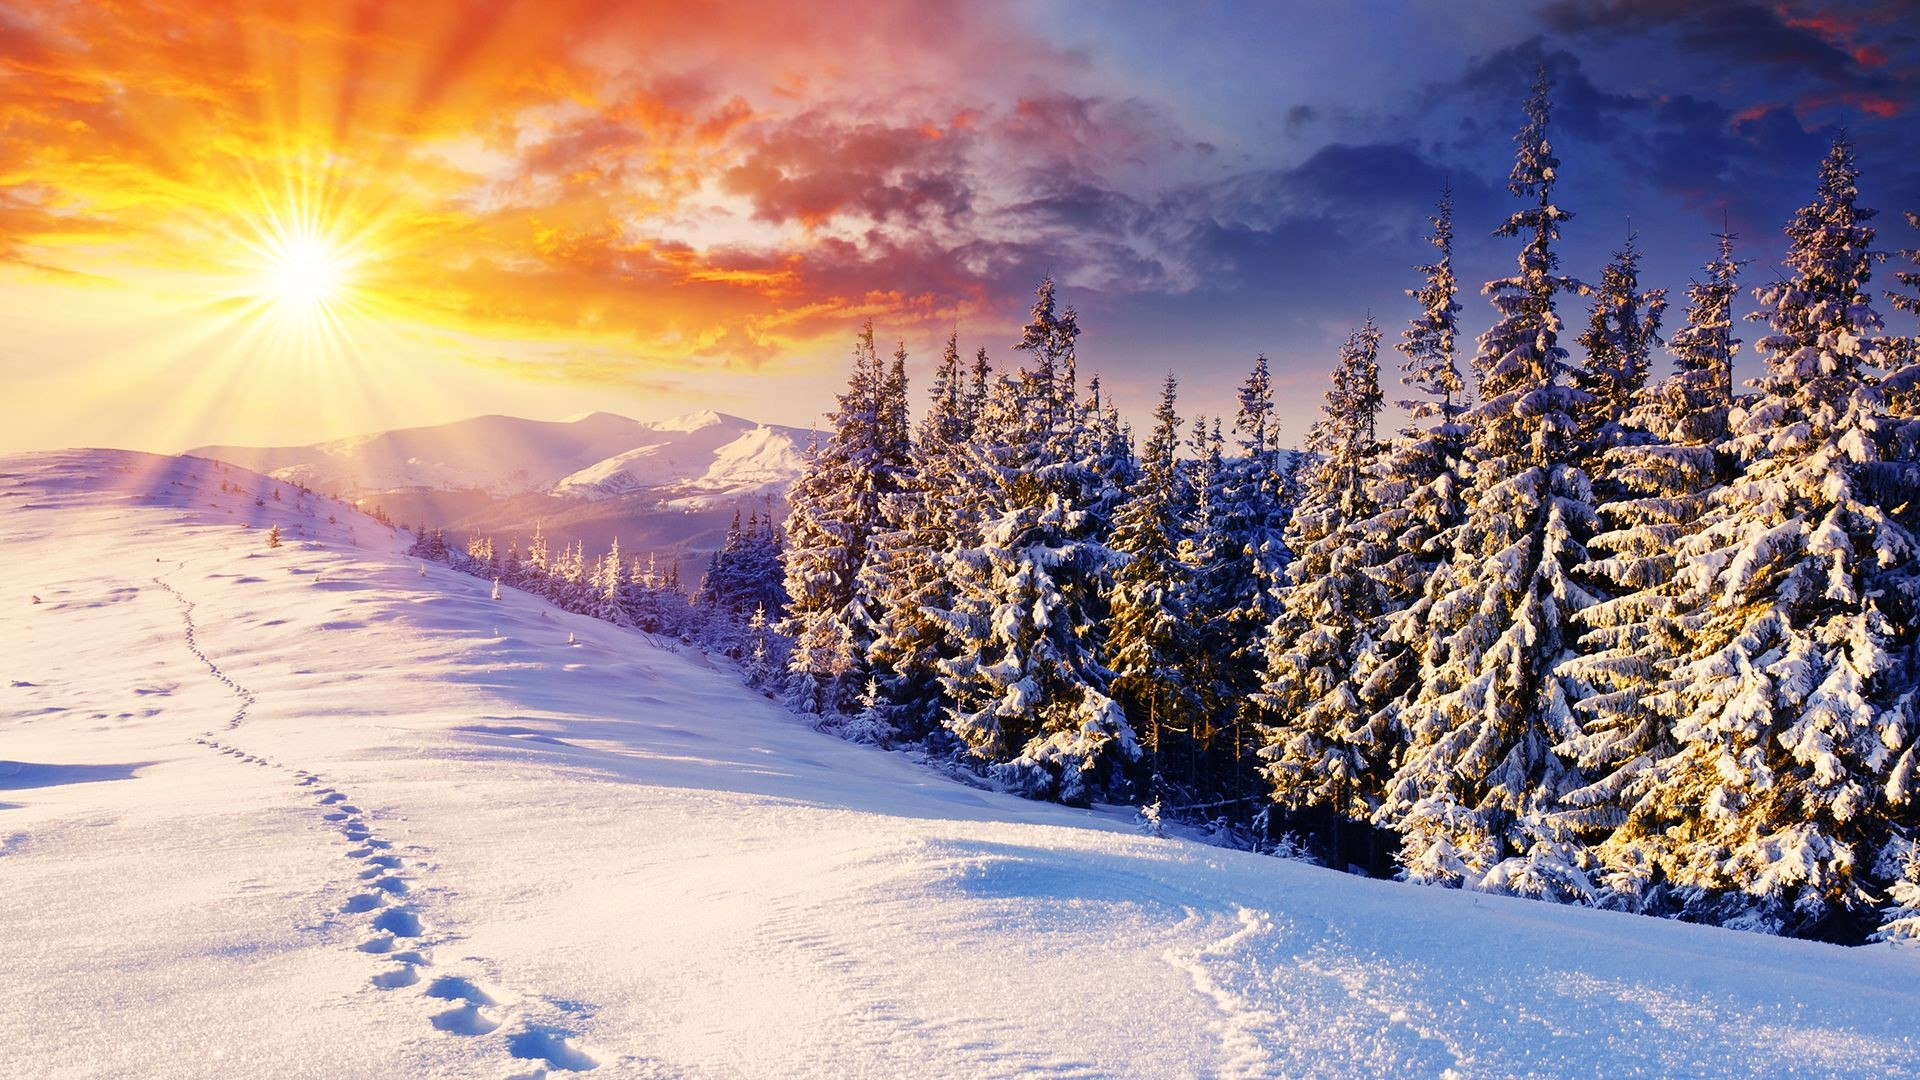 1920x1080  Full HD 1080p, Best HD Winter Wallpapers, B.SCB Wallpapers